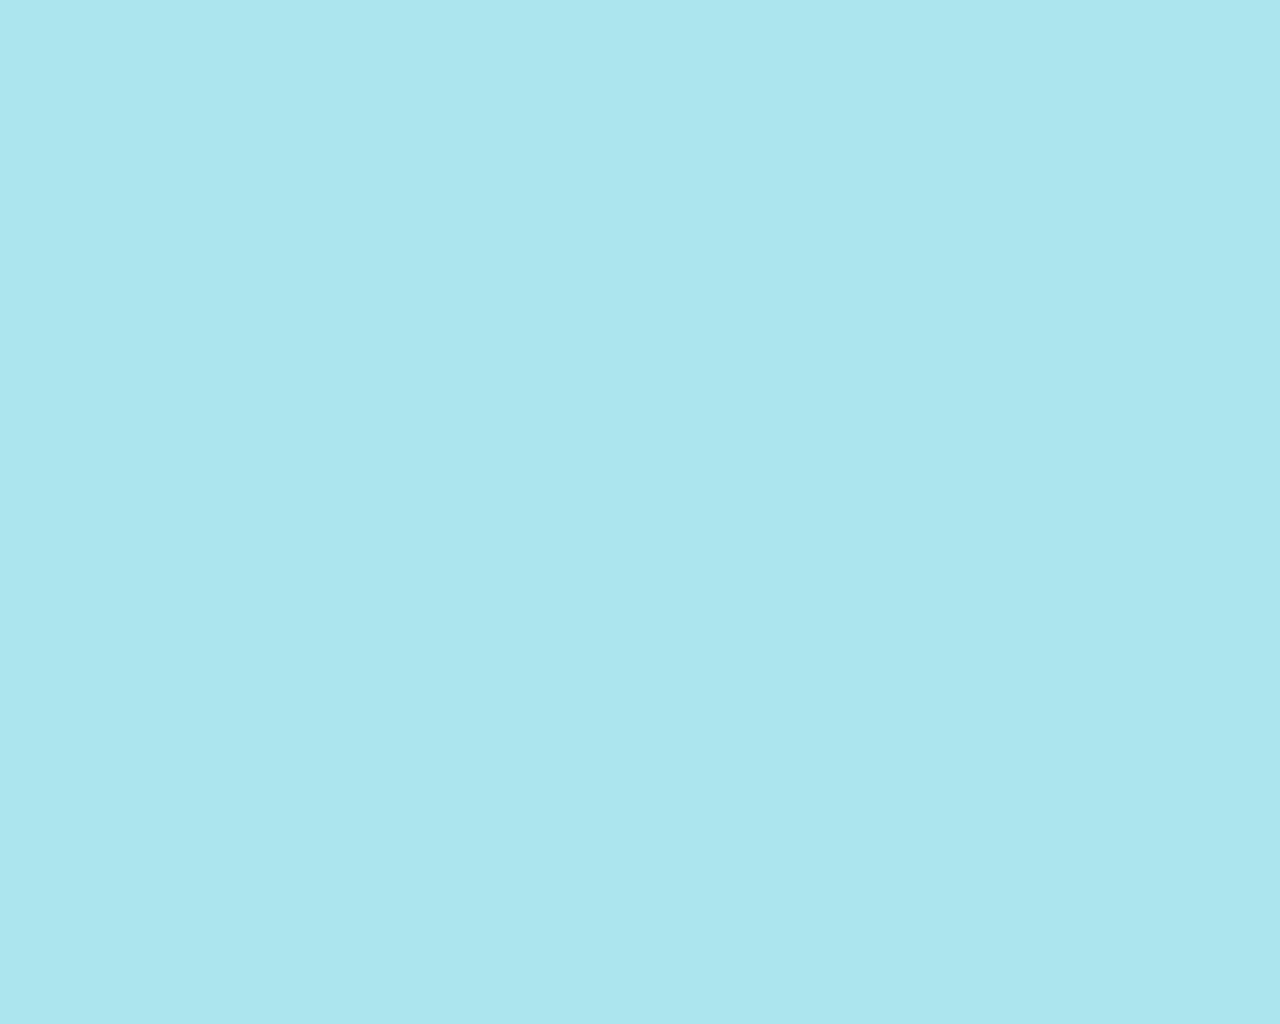 1280x1024 Blizzard Blue Solid Color Background